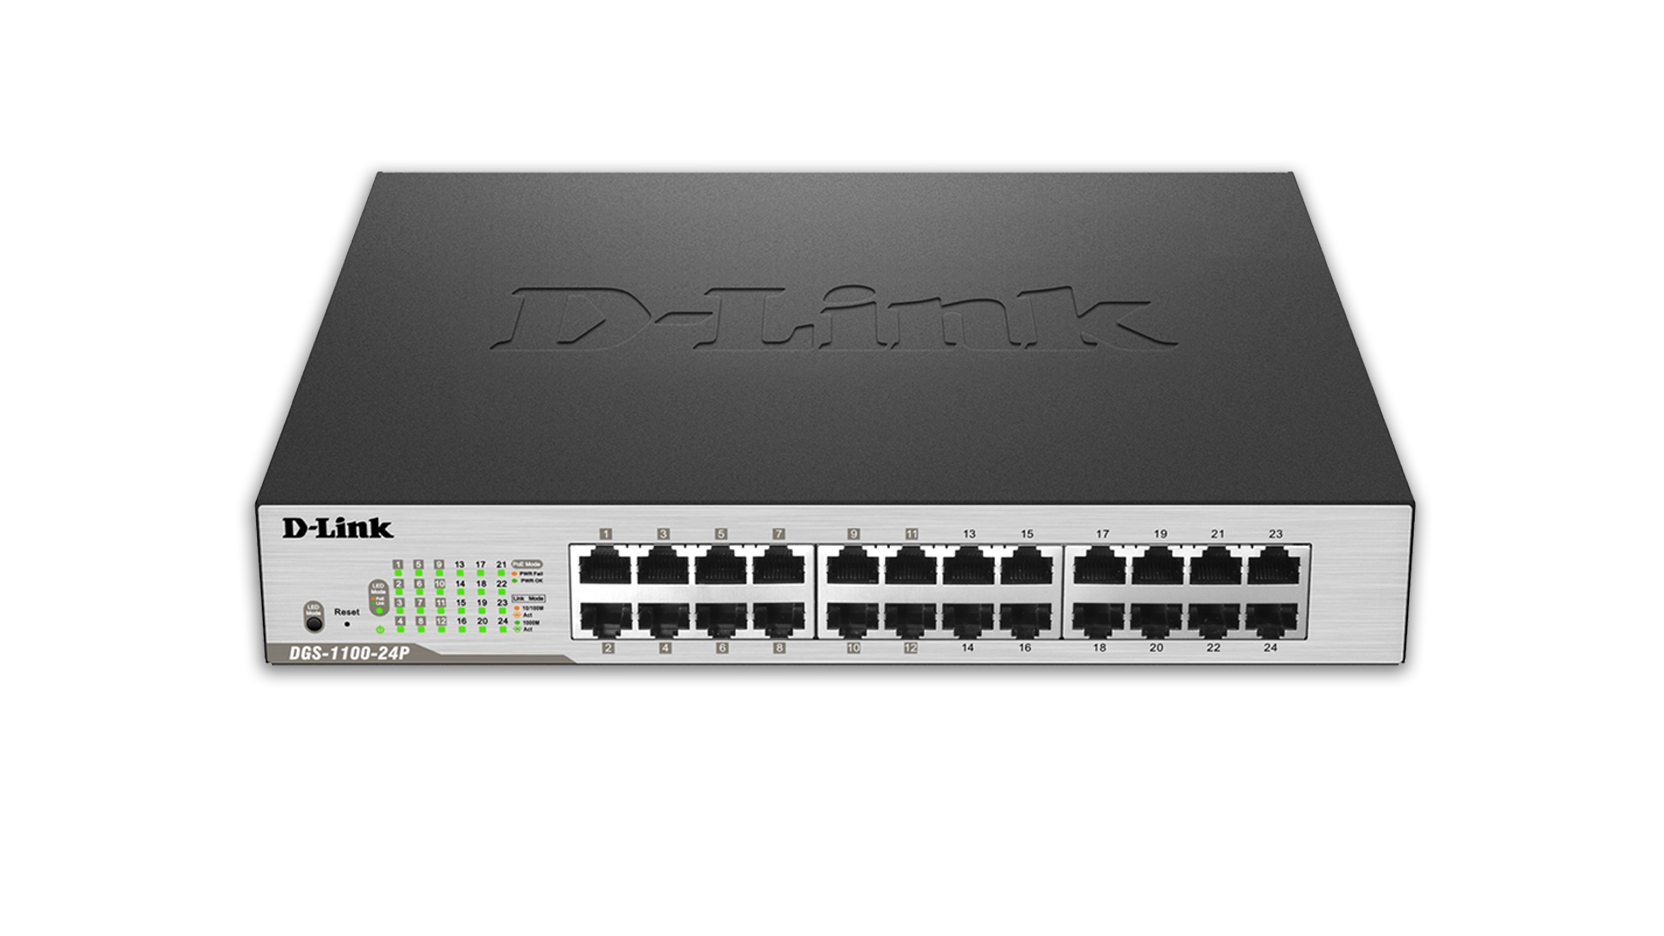 D Link Smart Managed 24 Port Gigabit Poe Switch Dgs 1100 24p Module With 6port Network And Cable Distribution